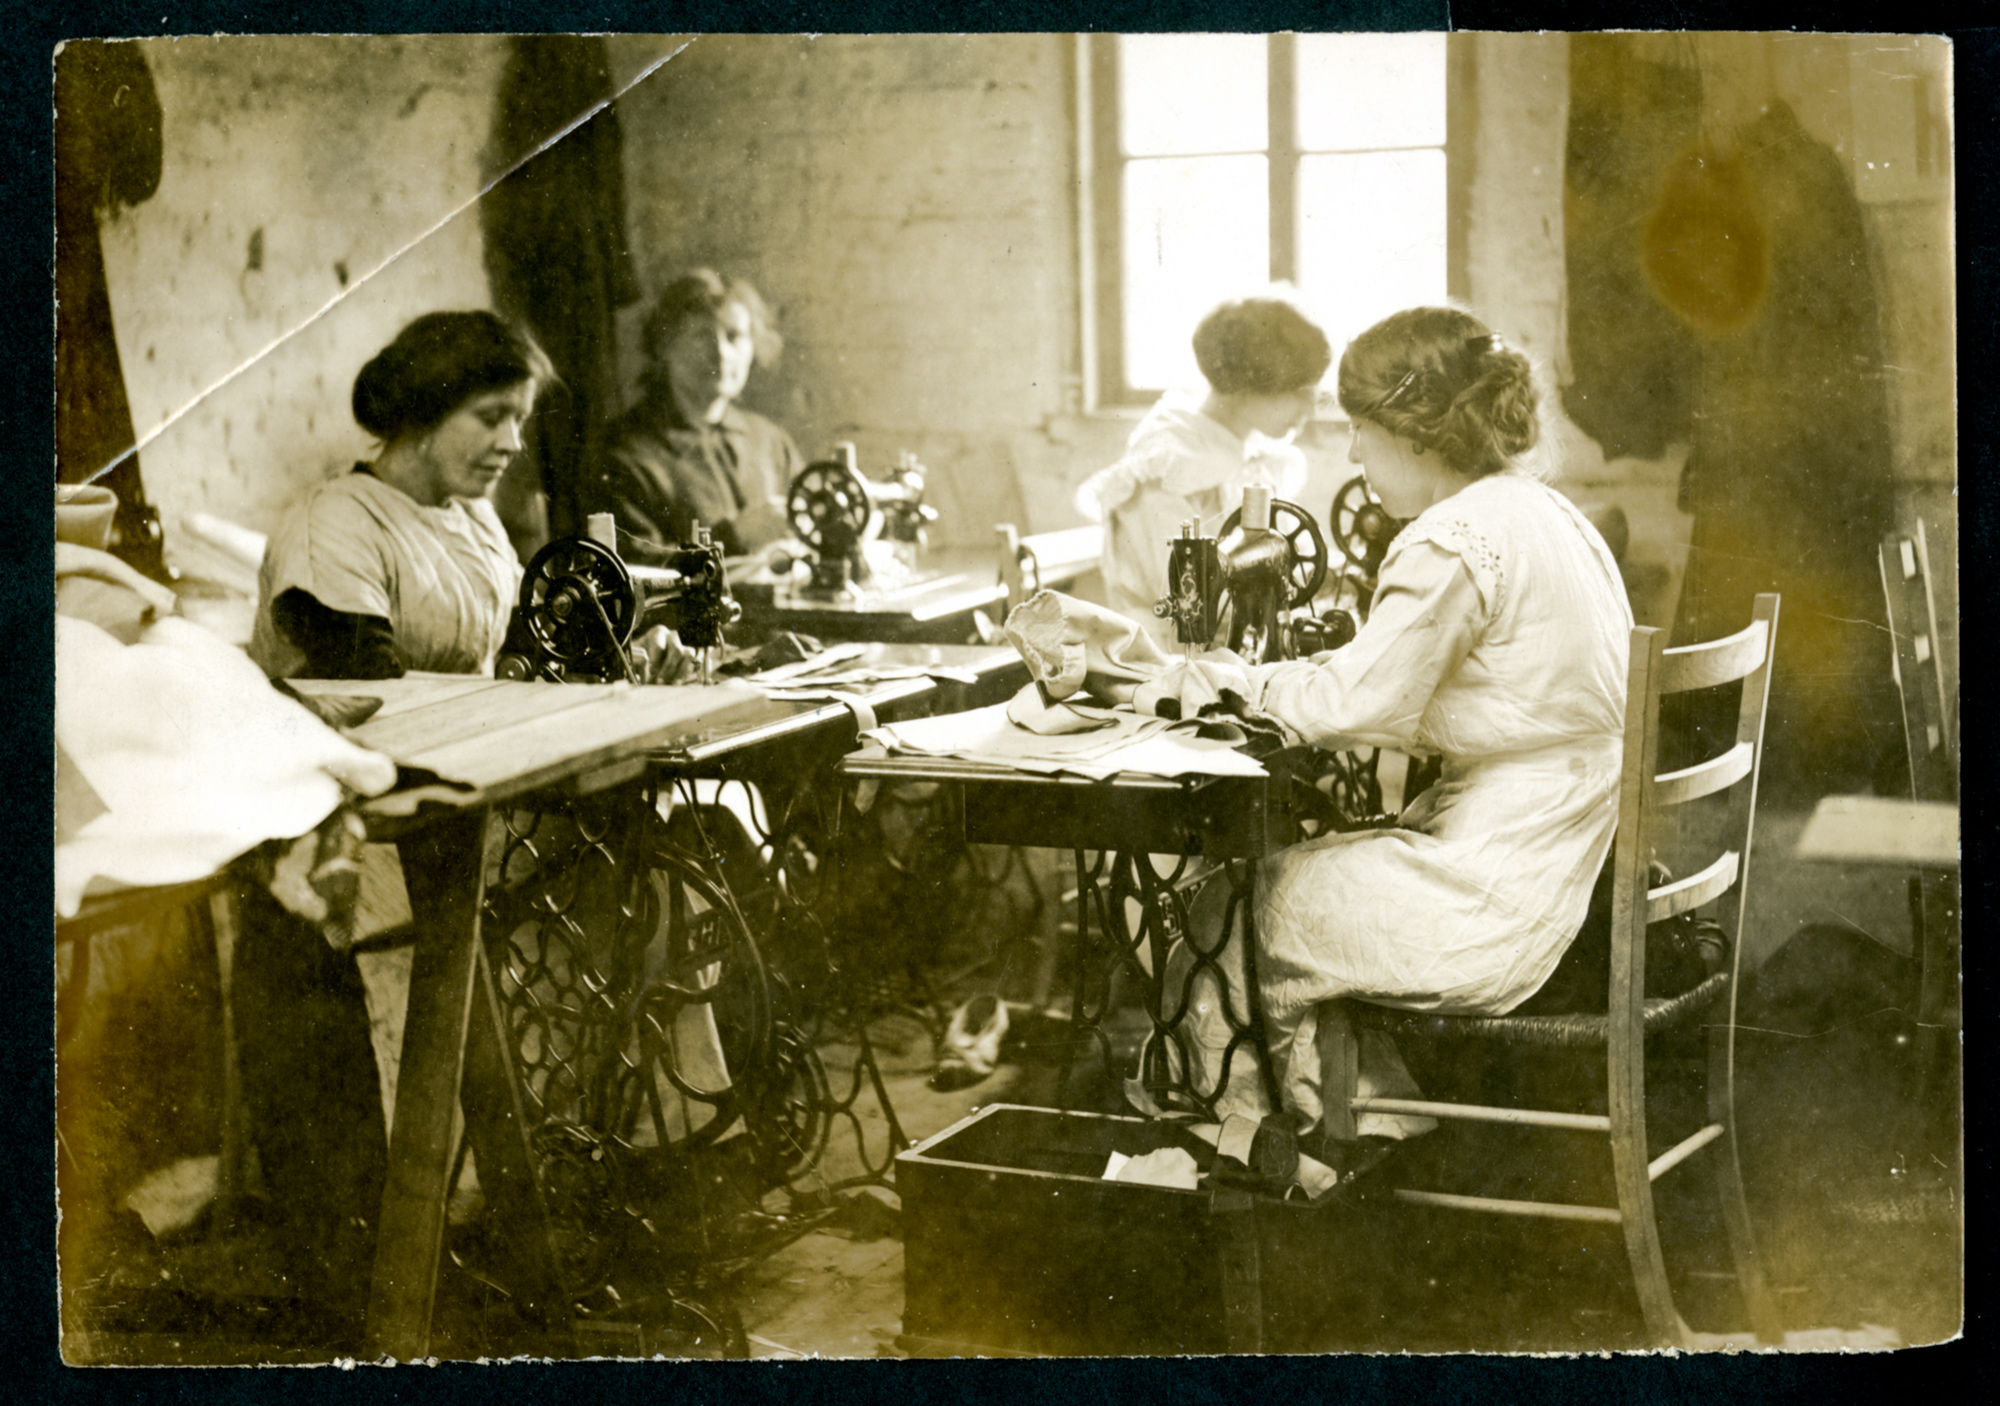 Four women working on sewing machines in the ELFS cooperative factory